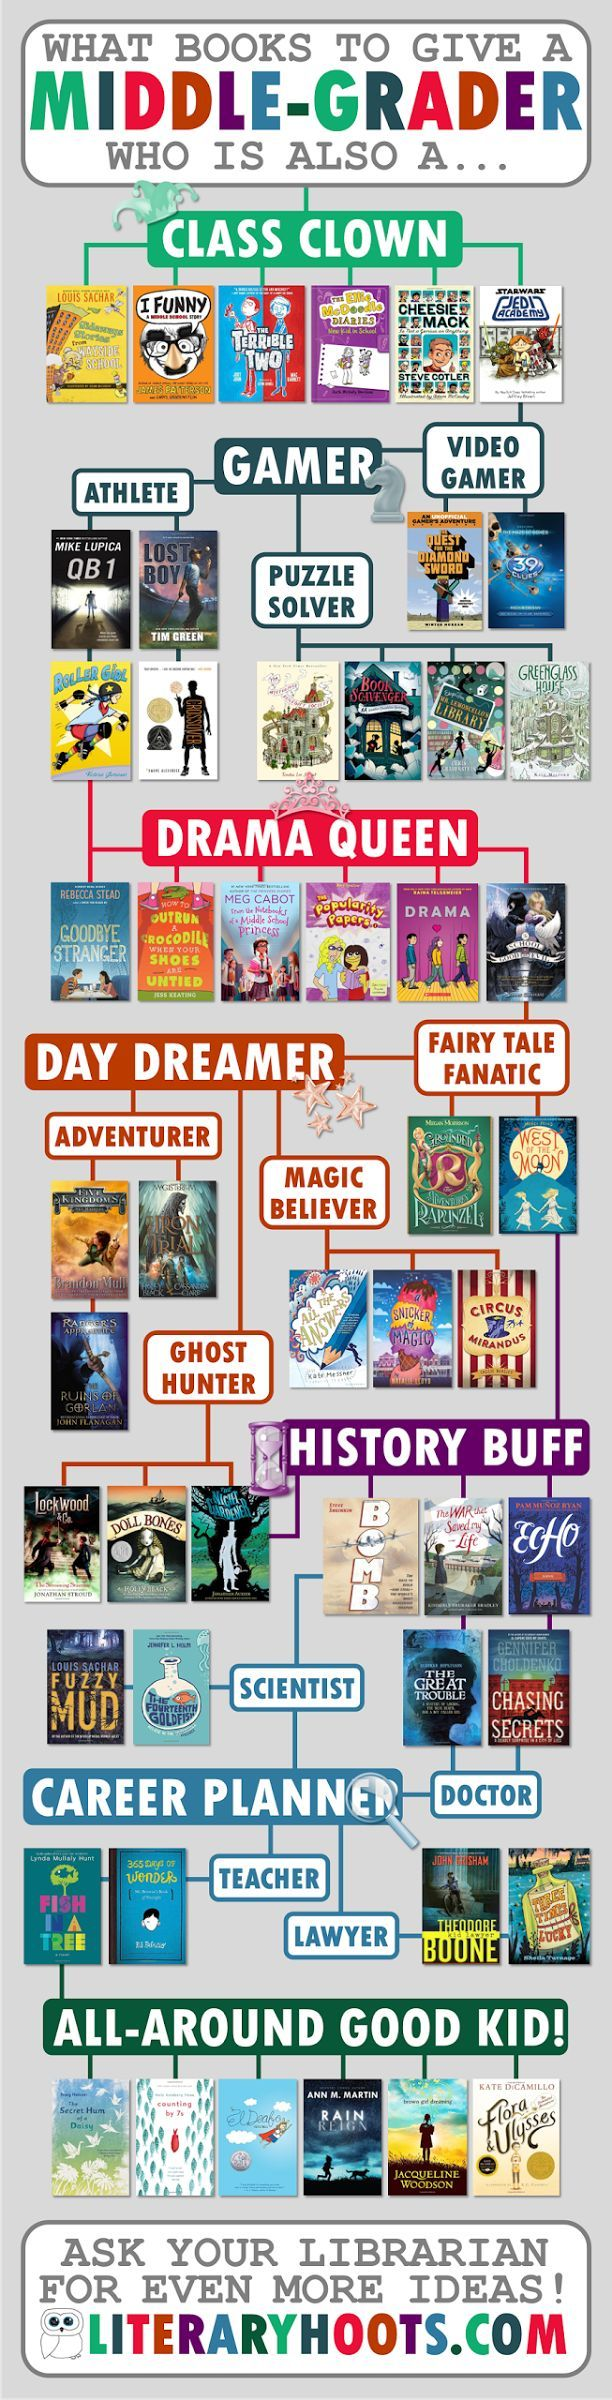 Flowchart: What Books to Give a Middle-Grader | Flowchart